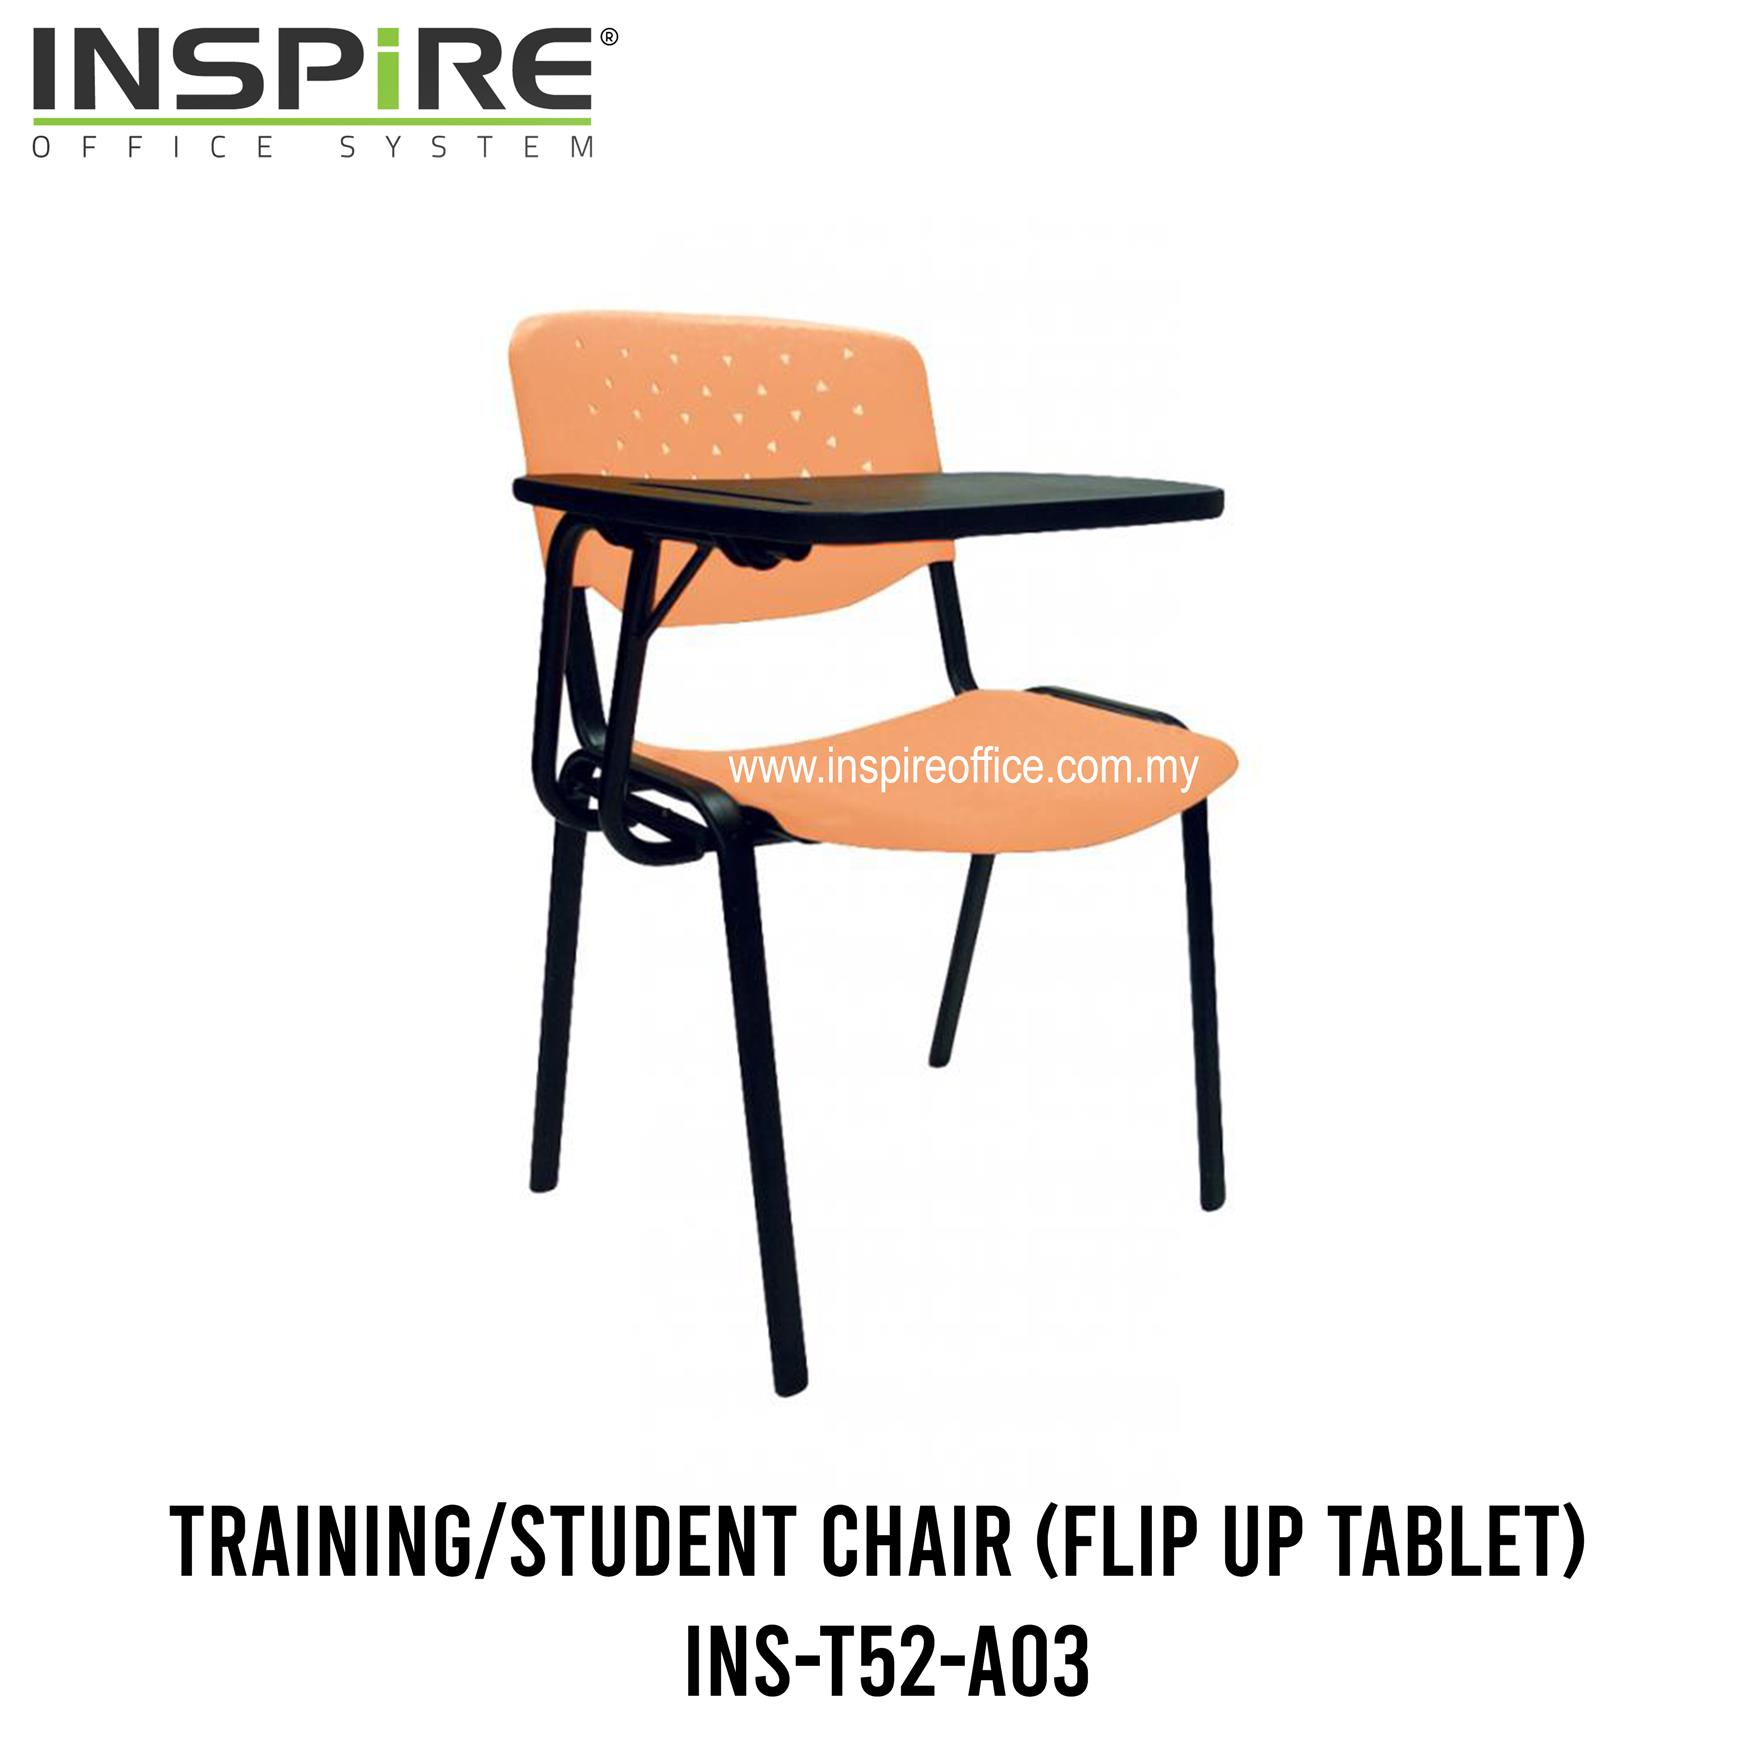 INS-T52-A03 Training/Student Chair (Flip Up Tablet)